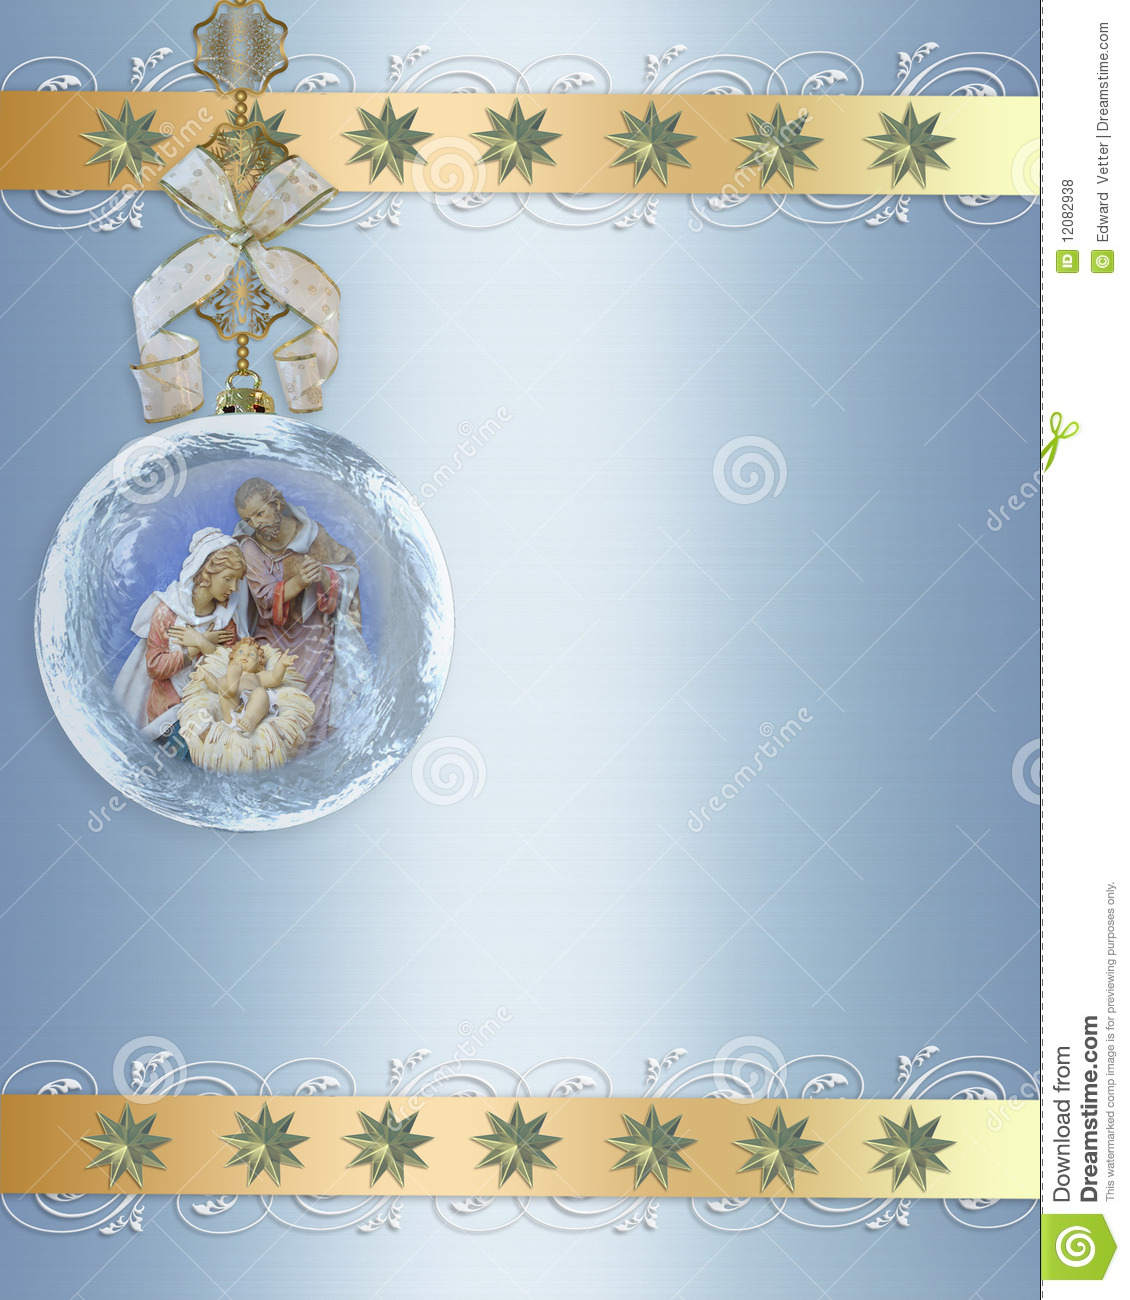 Free Religious Christmas Border Clipart Clipground